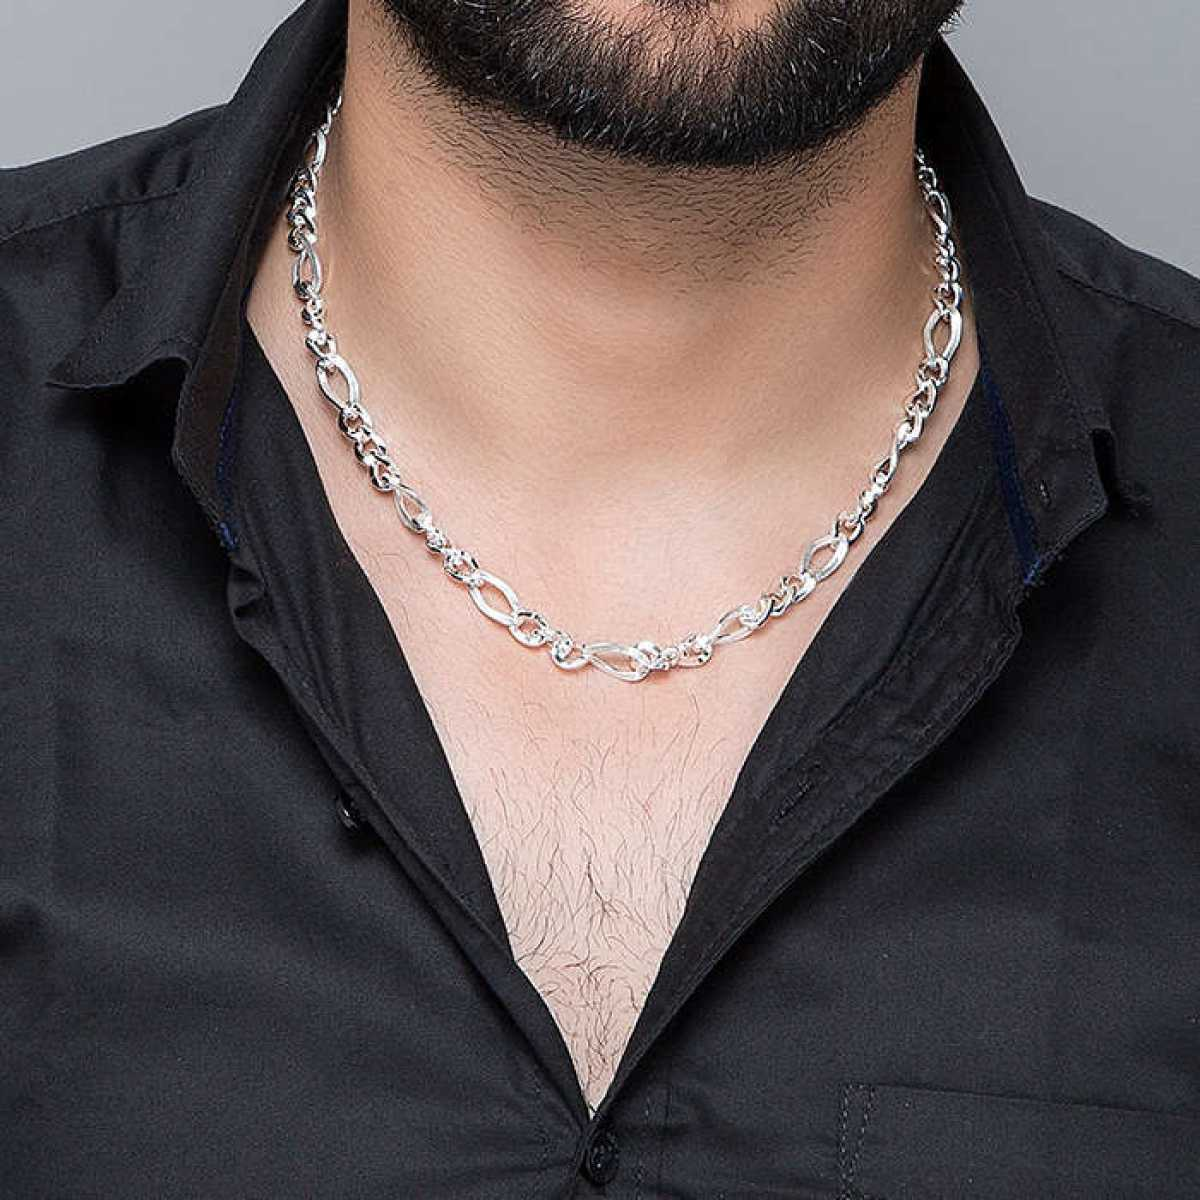 Engraved Sterling Silver Chain for Men